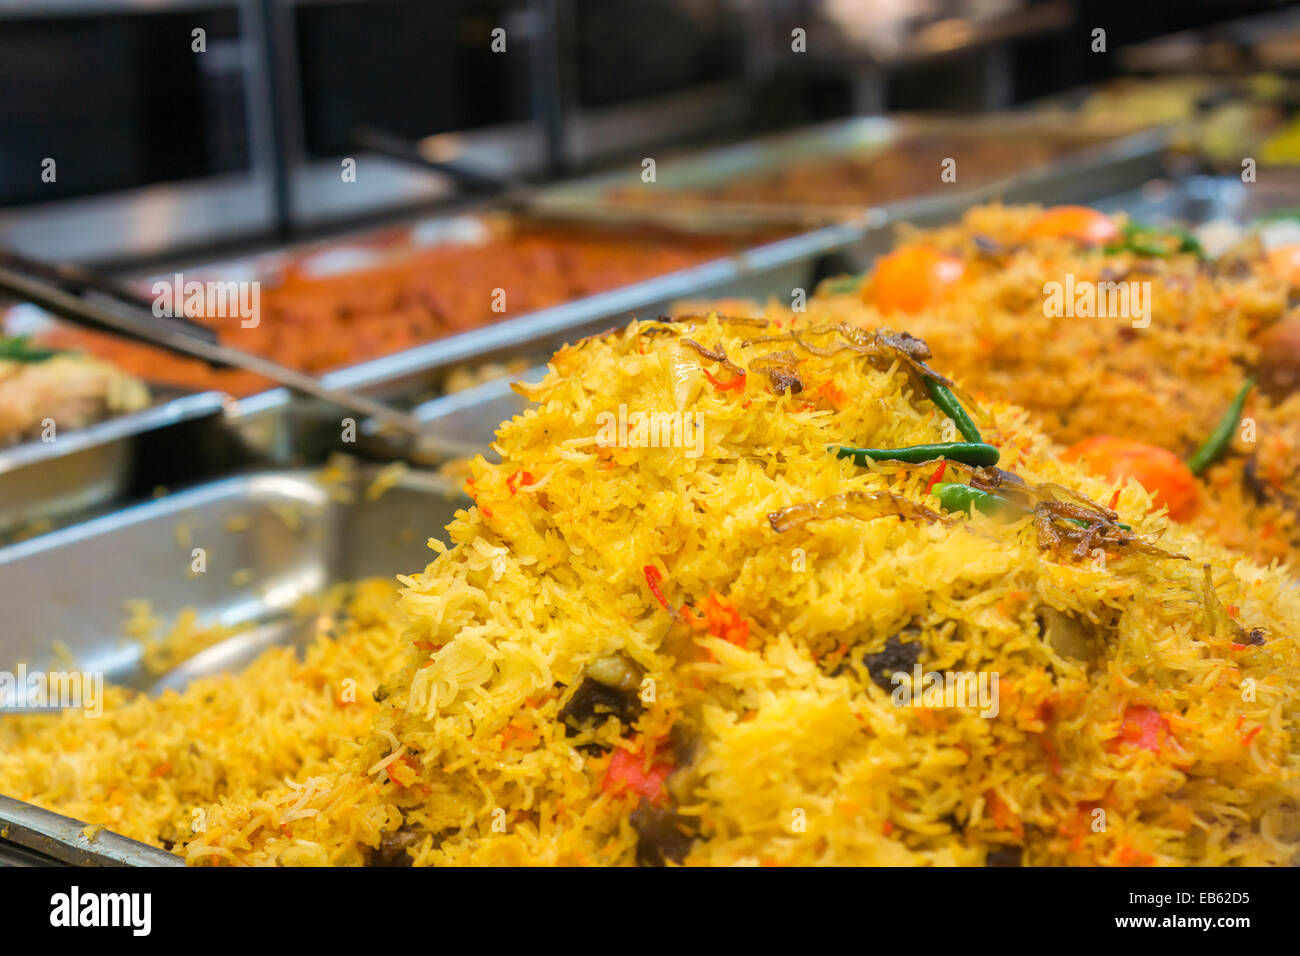 Wondrous Rice Dishes In A Buffet In An Indian Restaurant In The Download Free Architecture Designs Viewormadebymaigaardcom